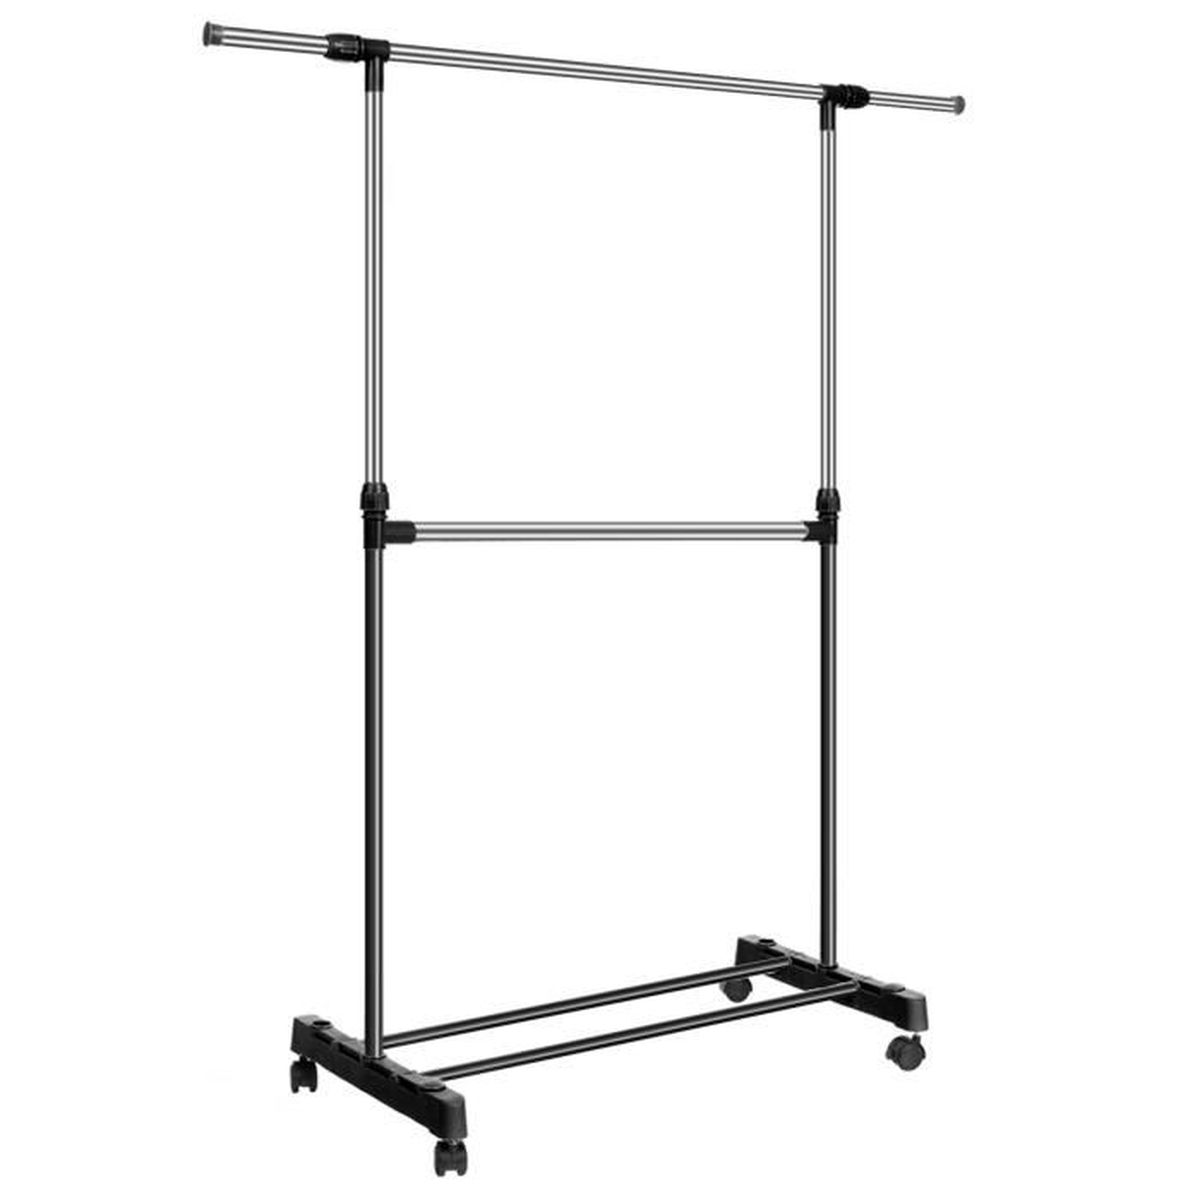 Cr maill res cintres extensible ajustable v tement s cher - Etagere a chaussure extensible ...